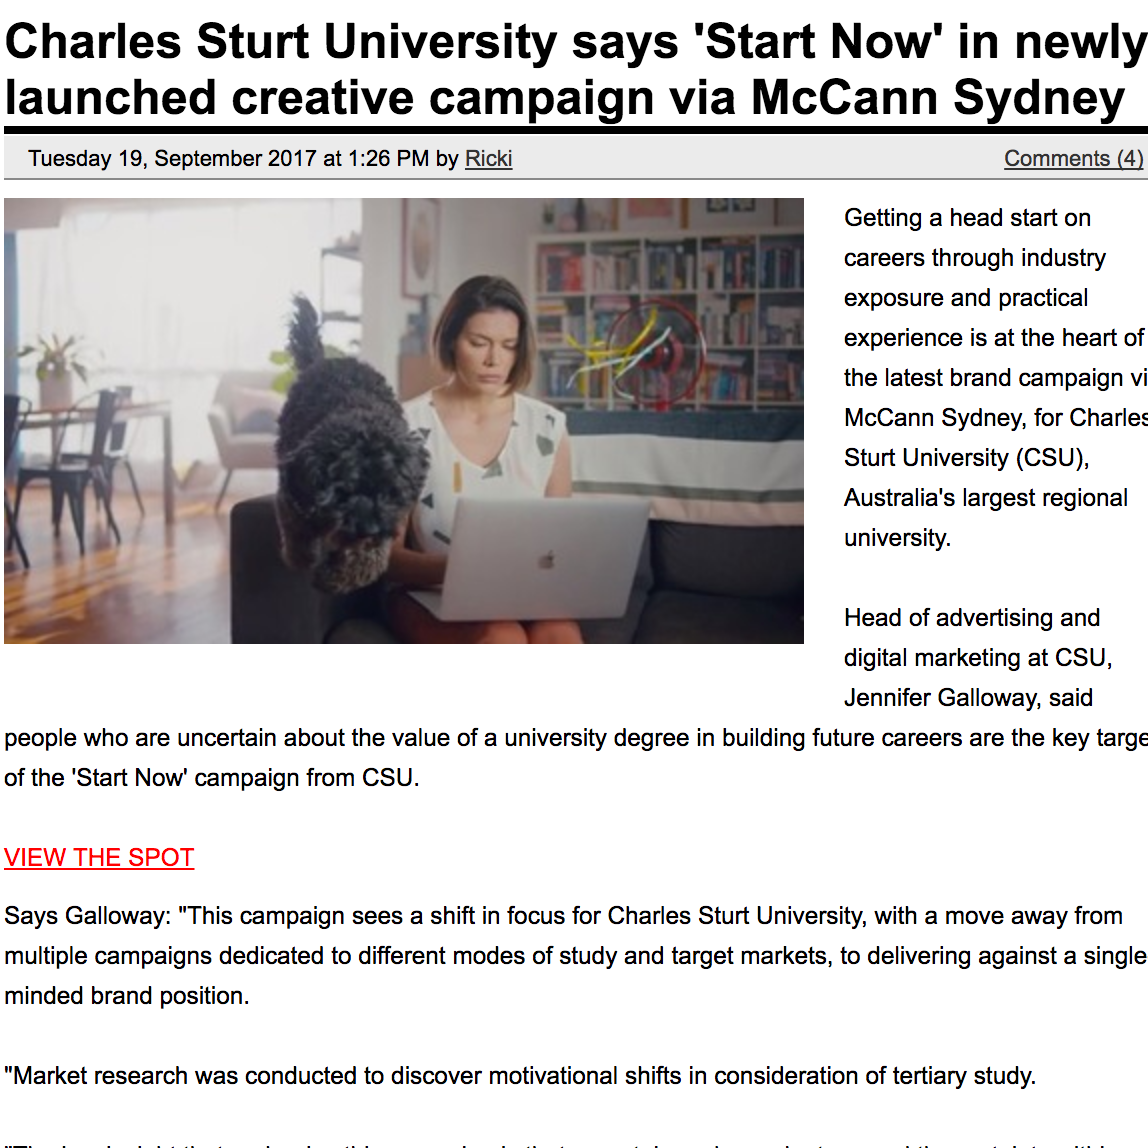 CAMPAIGN BRIEF  Charles Sturt University says 'Start Now' in newly launched creative campaign via McCann Sydney